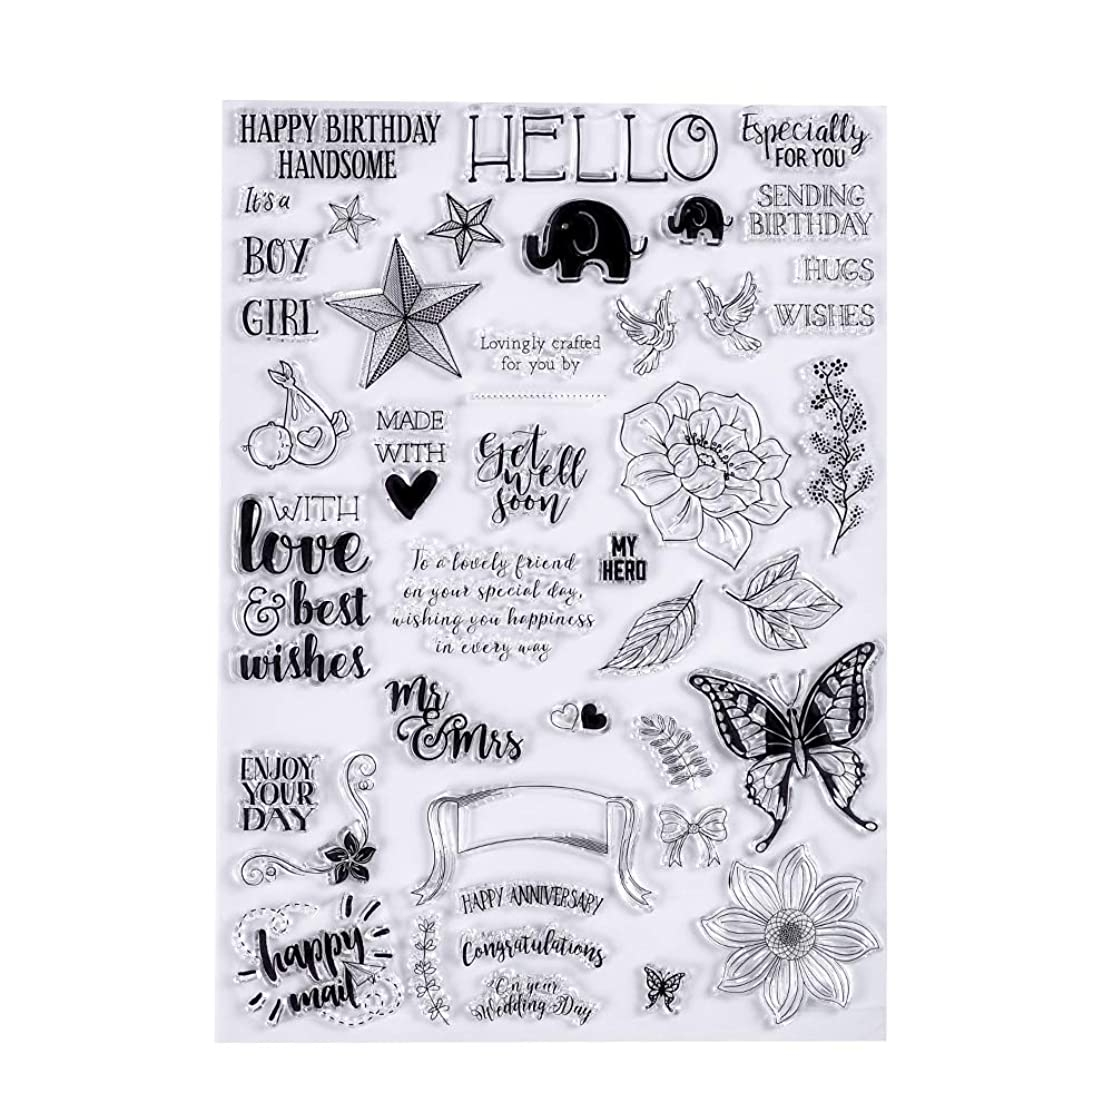 MaGuo Blessing and Greeting Rubber Clear Stamps with Flower Leaves and Butterfly for Decoration Paper Craft